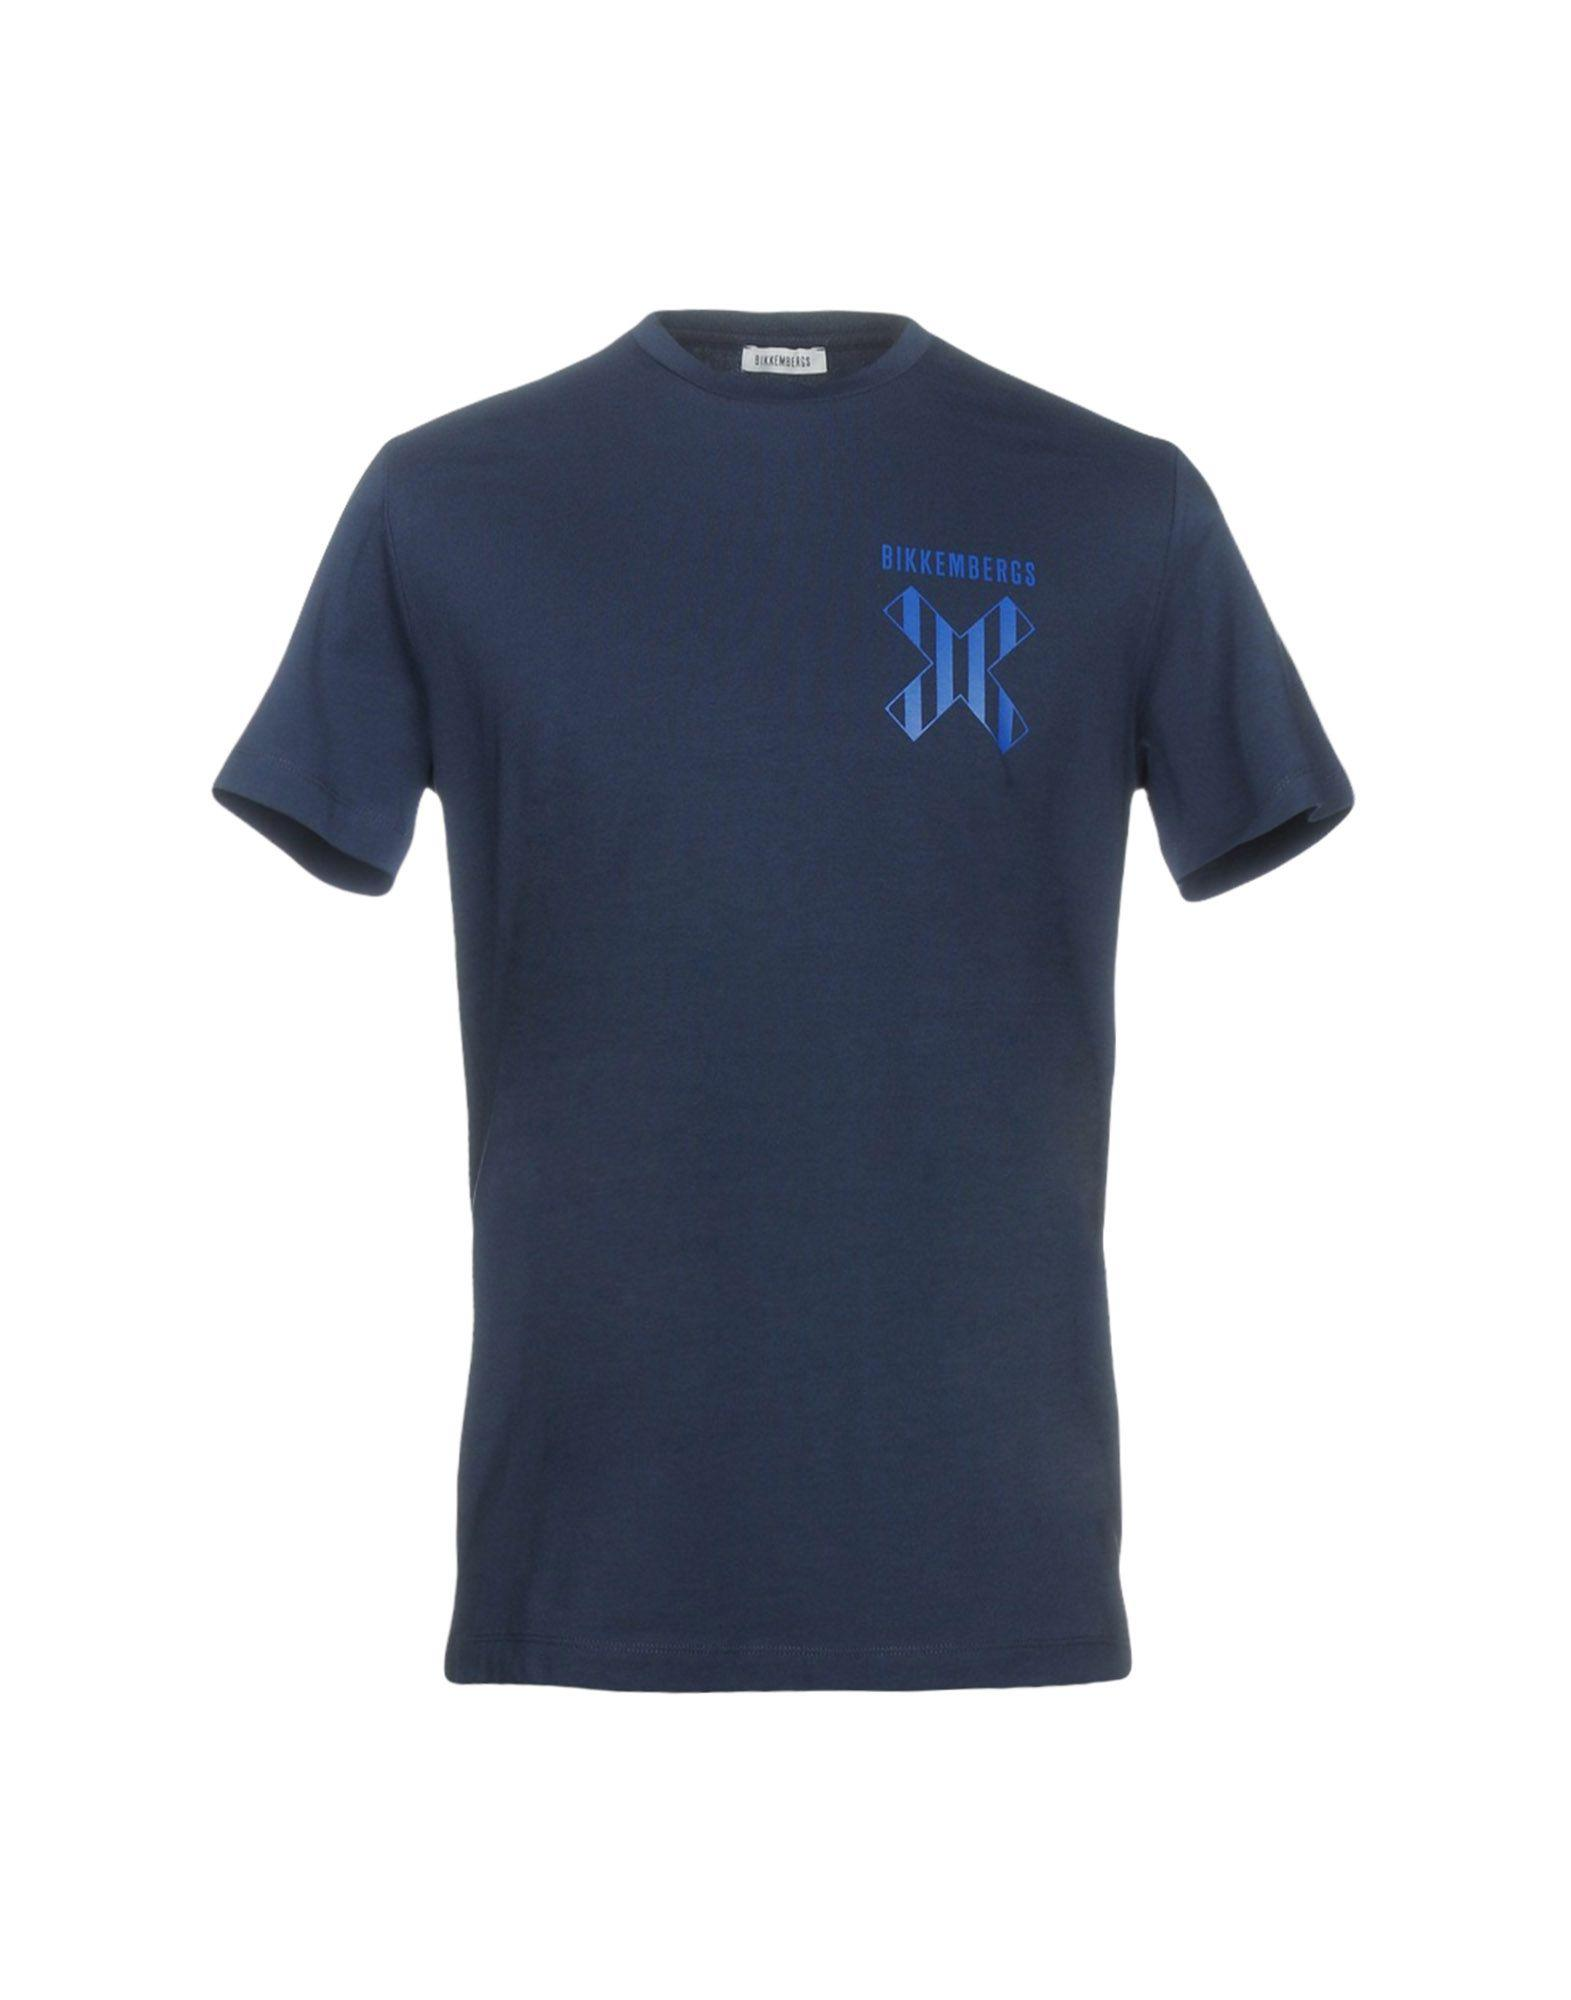 Bikkembergs T-shirts In Dark Blue